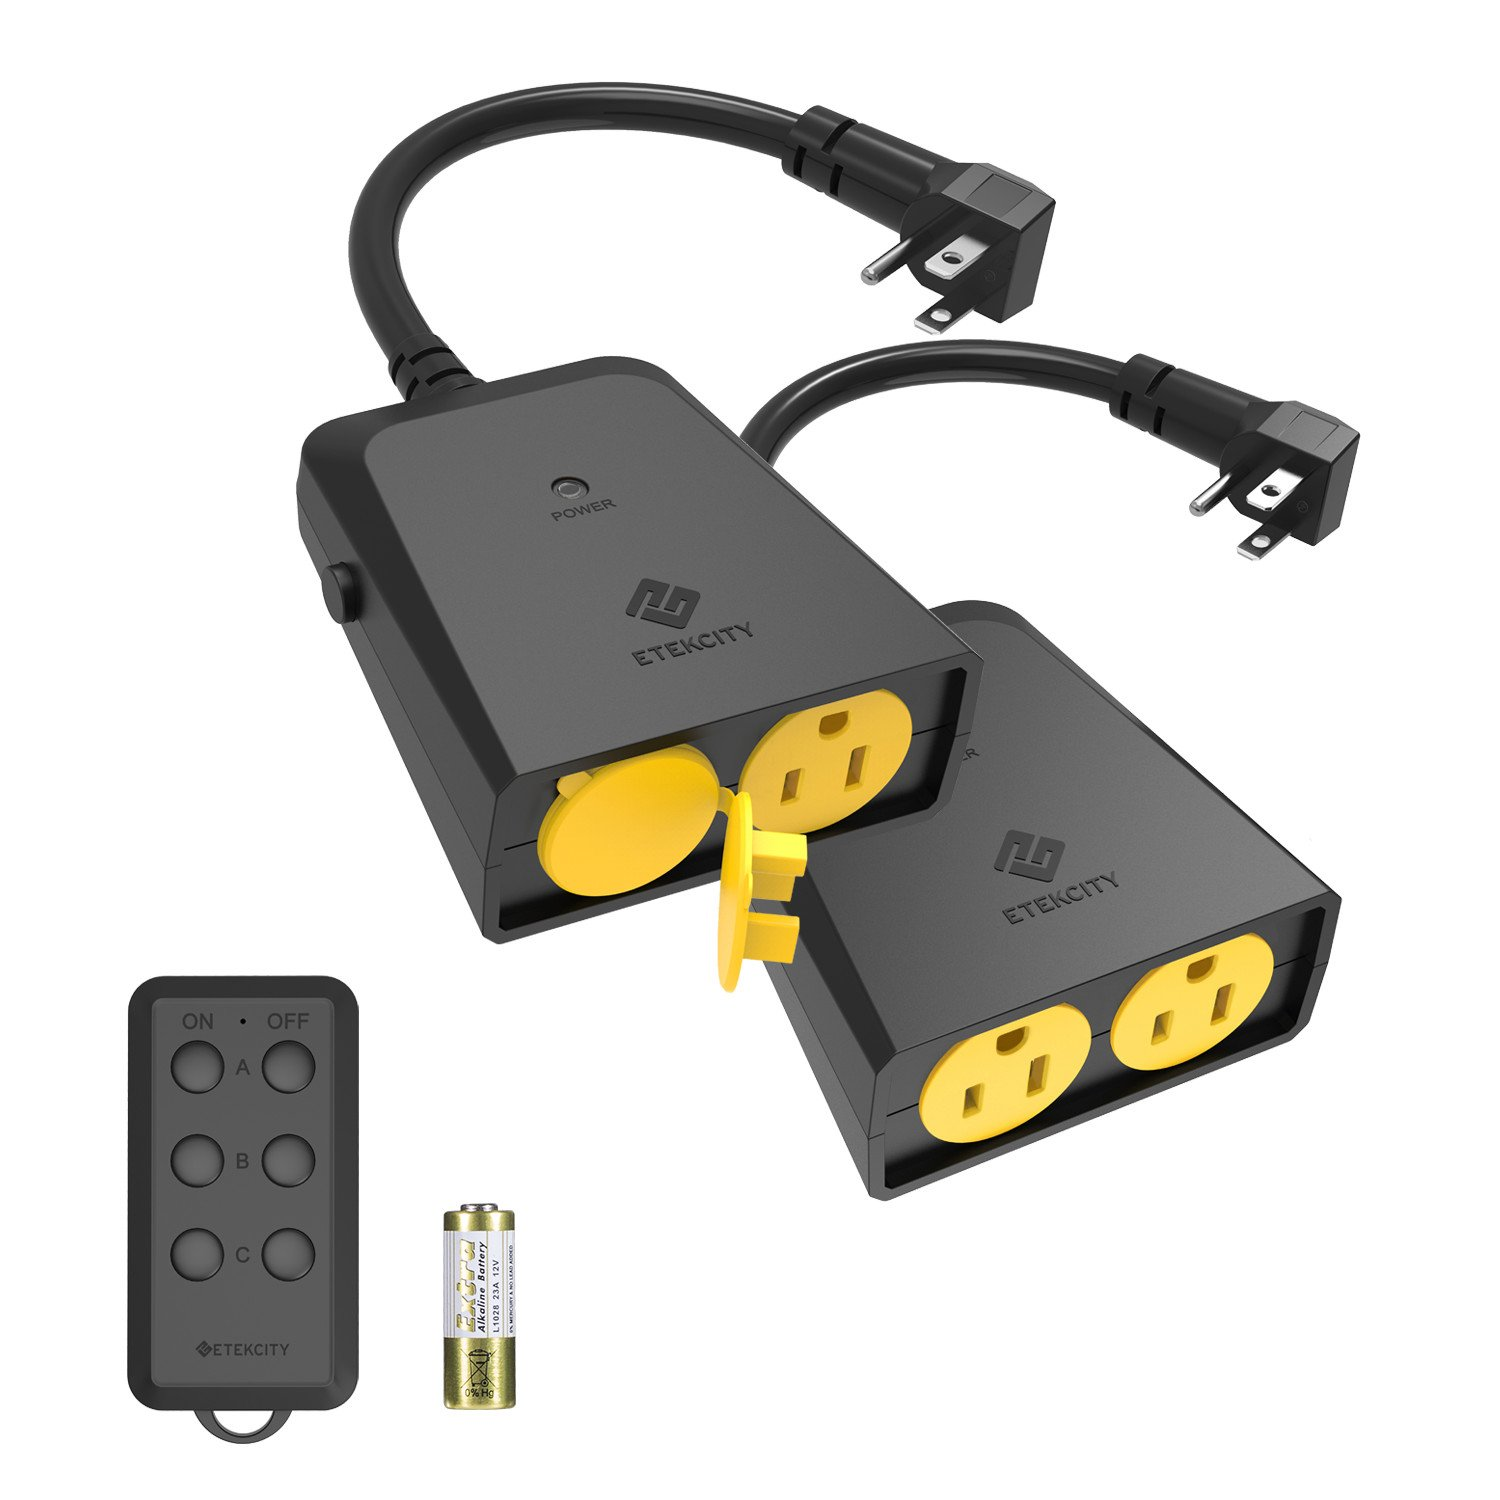 Etekcity Wireless Outdoor Remote Control Outlet (2 Pack), Weatherproof, 150ft Range Electrical Light Switch, Unlimited Connections, FCC ETL Certified, Black (1 Remote Included)